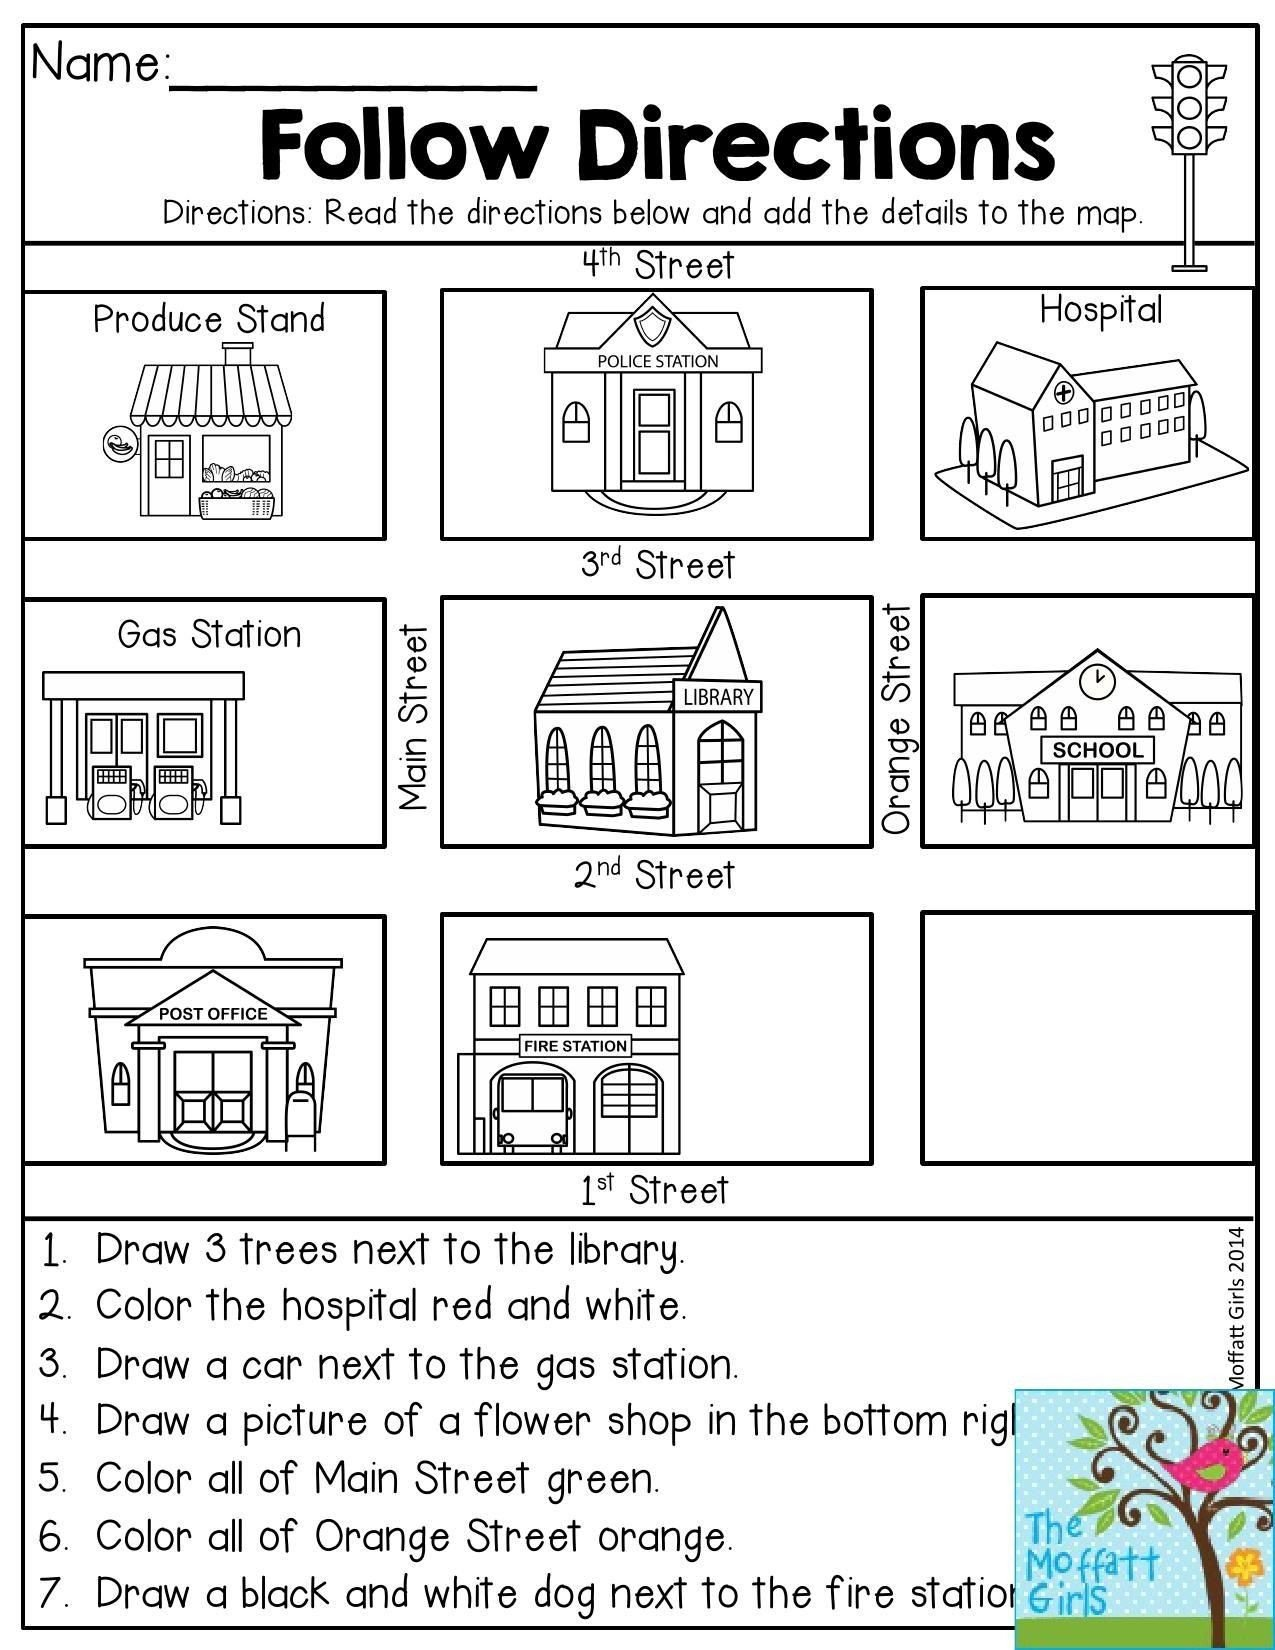 Vocabulary Worksheets for 1st Graders 1st Grade Vocabulary Worksheets